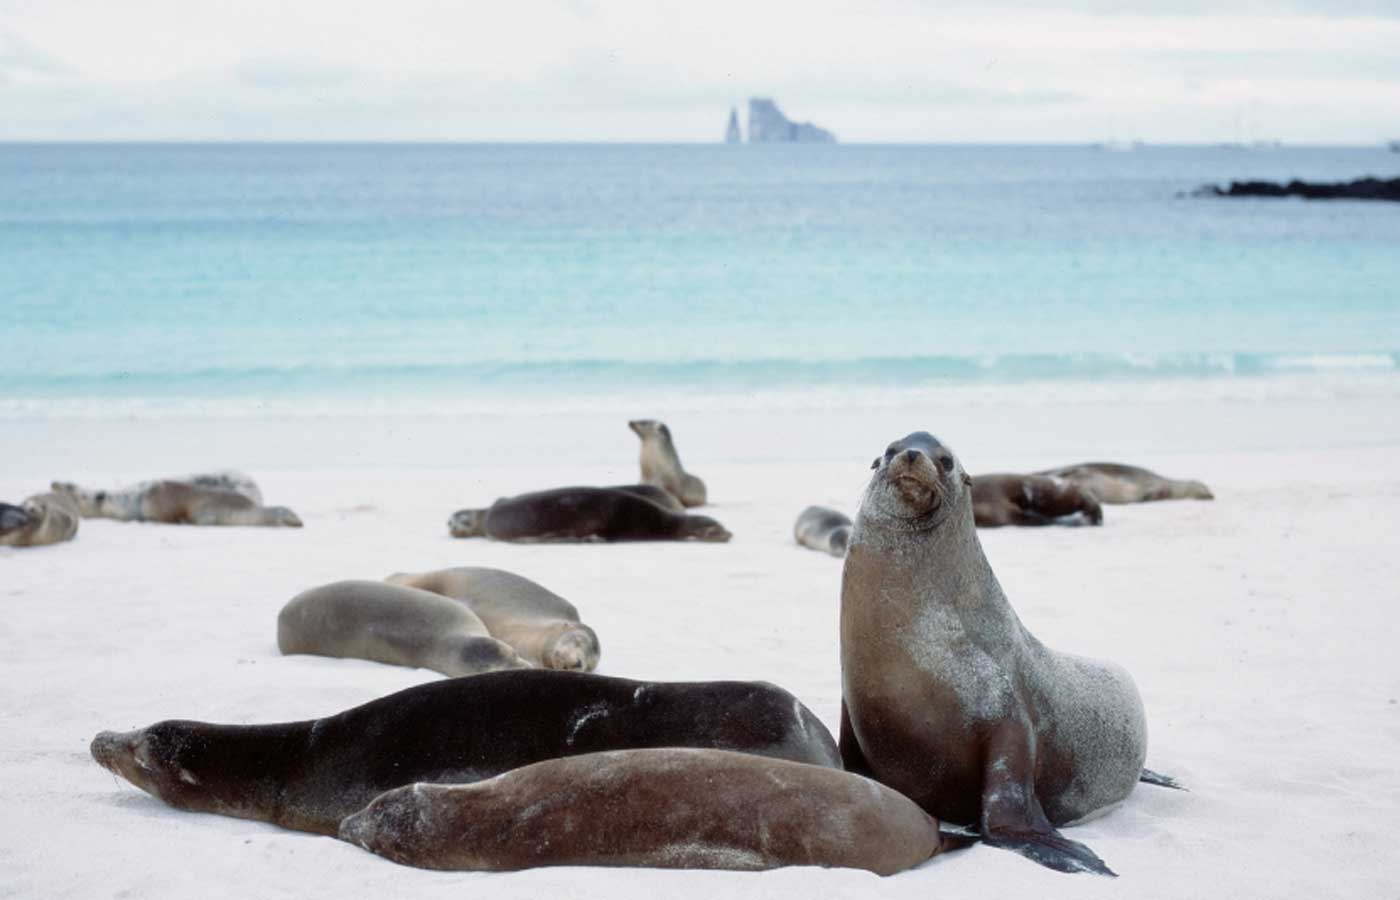 Sea lion group, Galapagos Islands